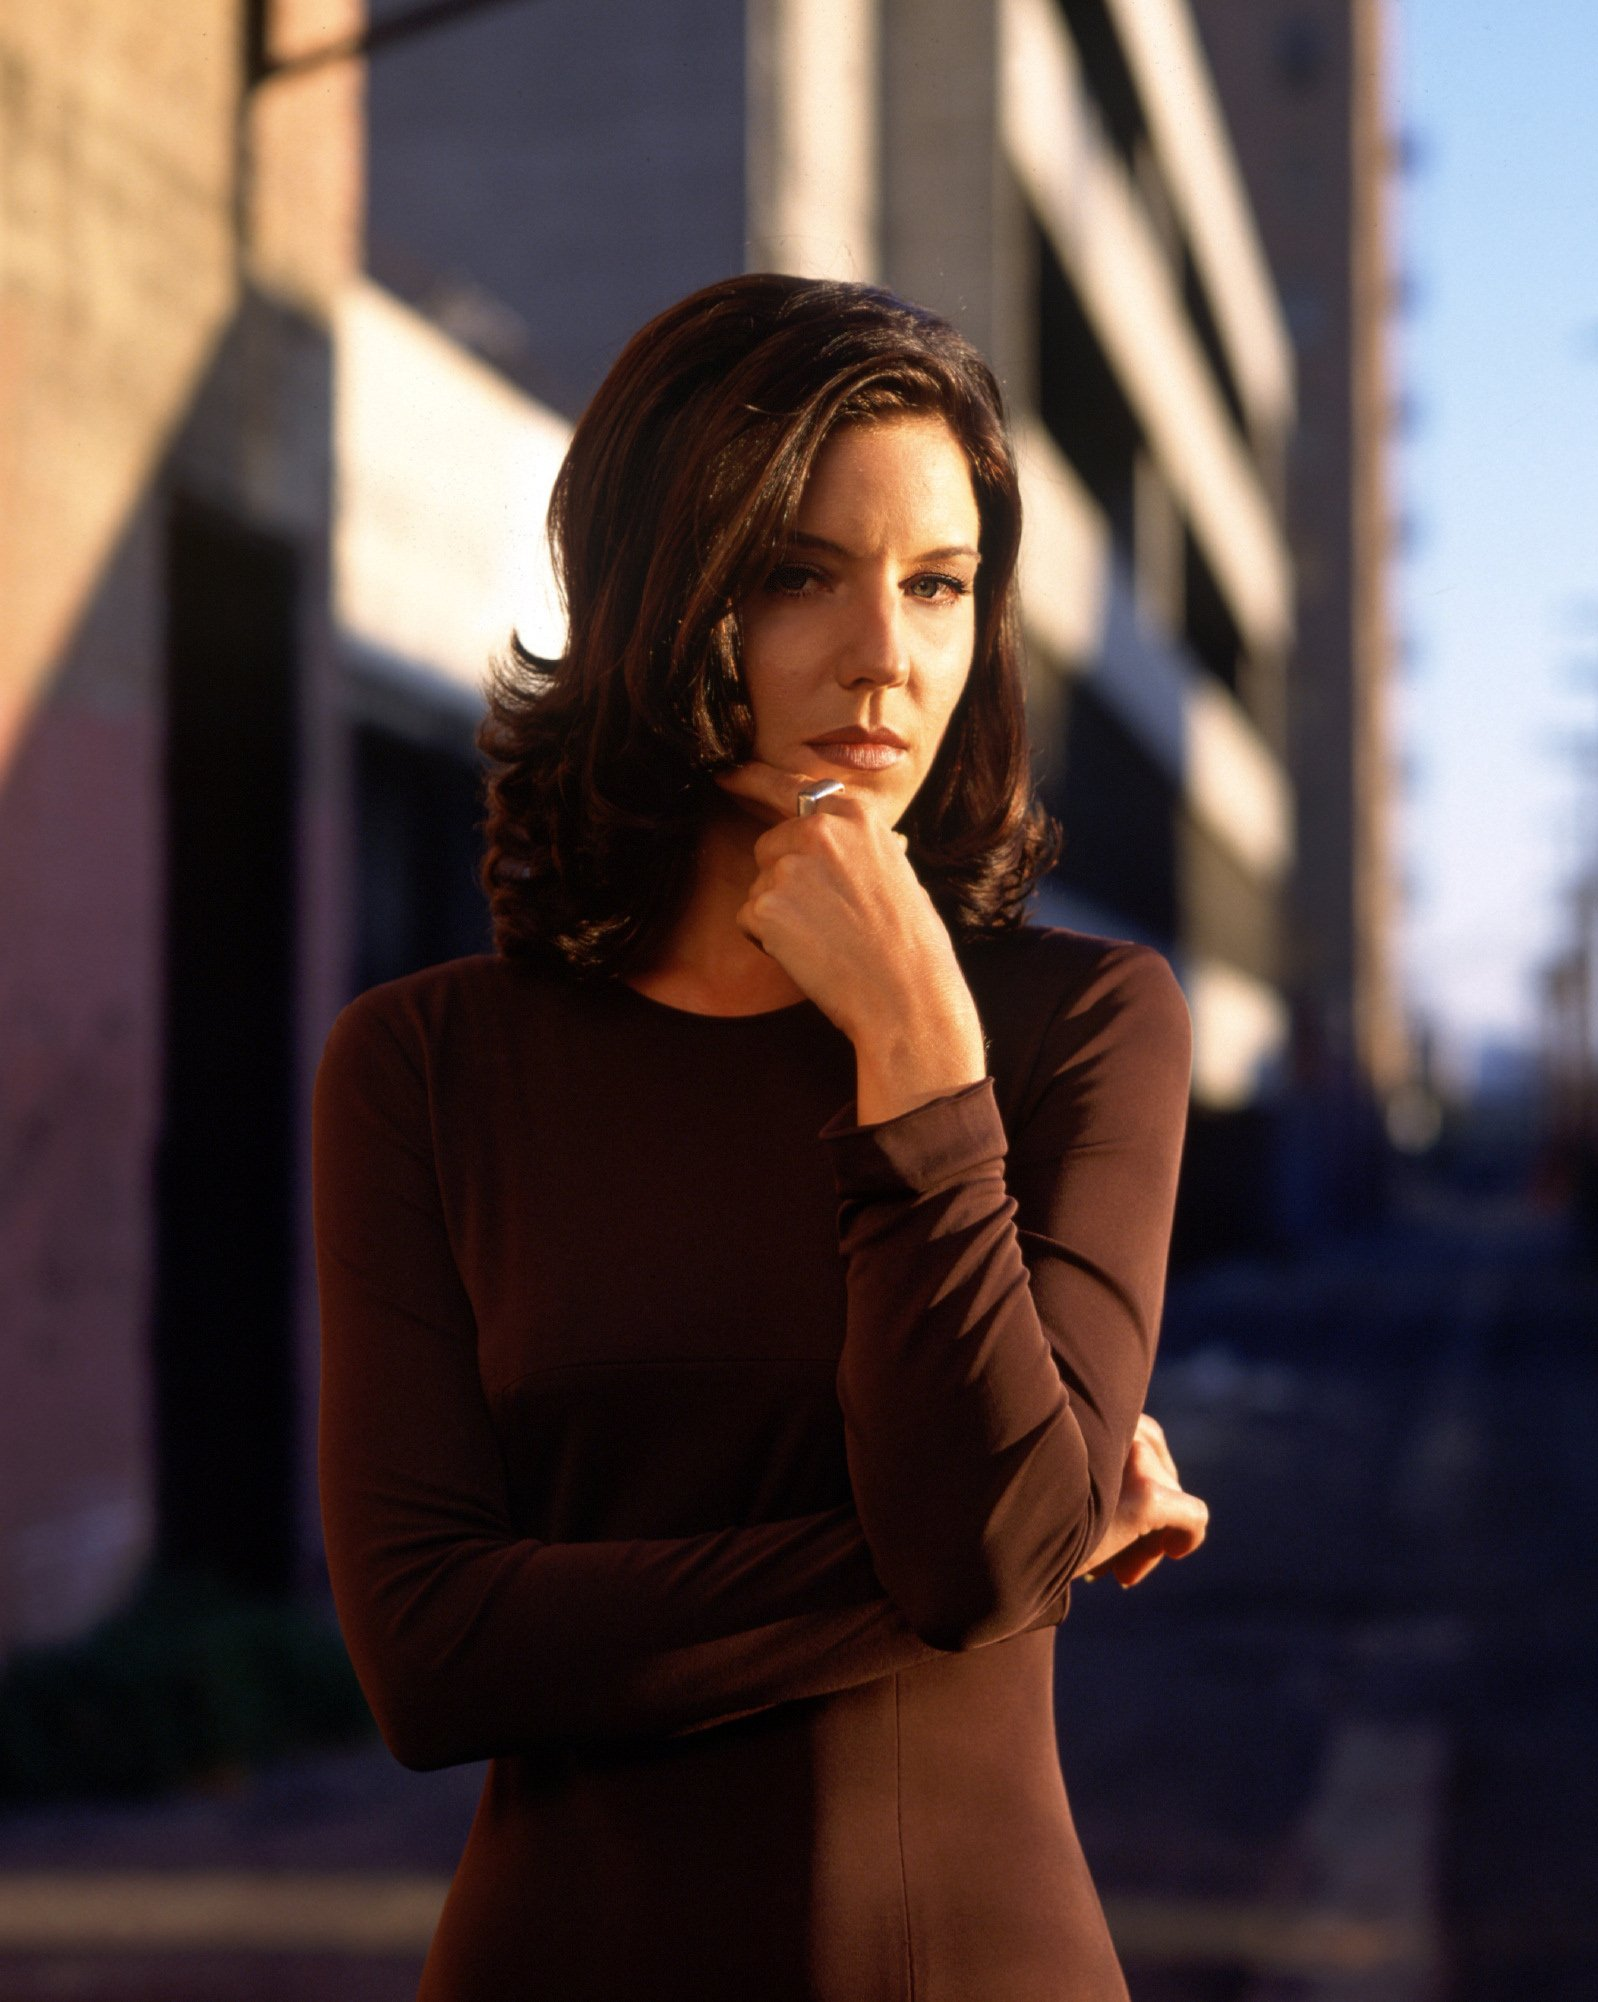 Andrea Parker photo gallery - high quality pics of Andrea